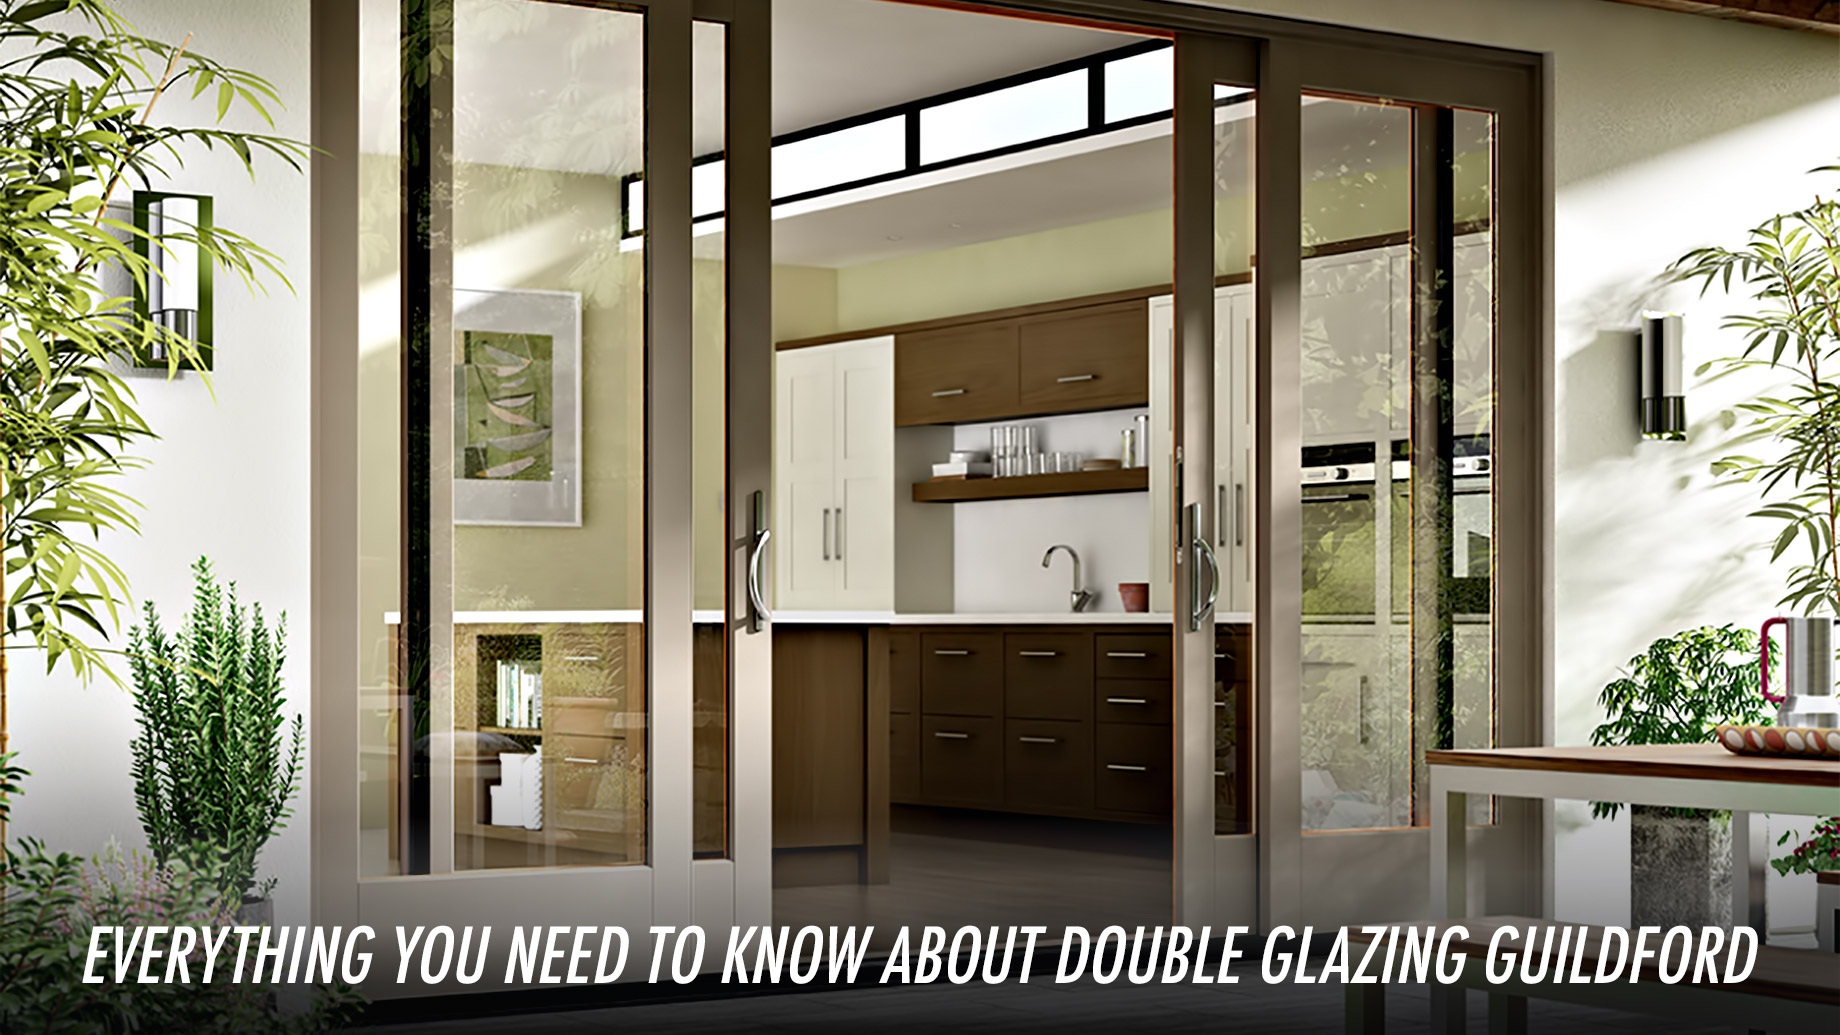 Everything You Need to Know about Double Glazing Guildford